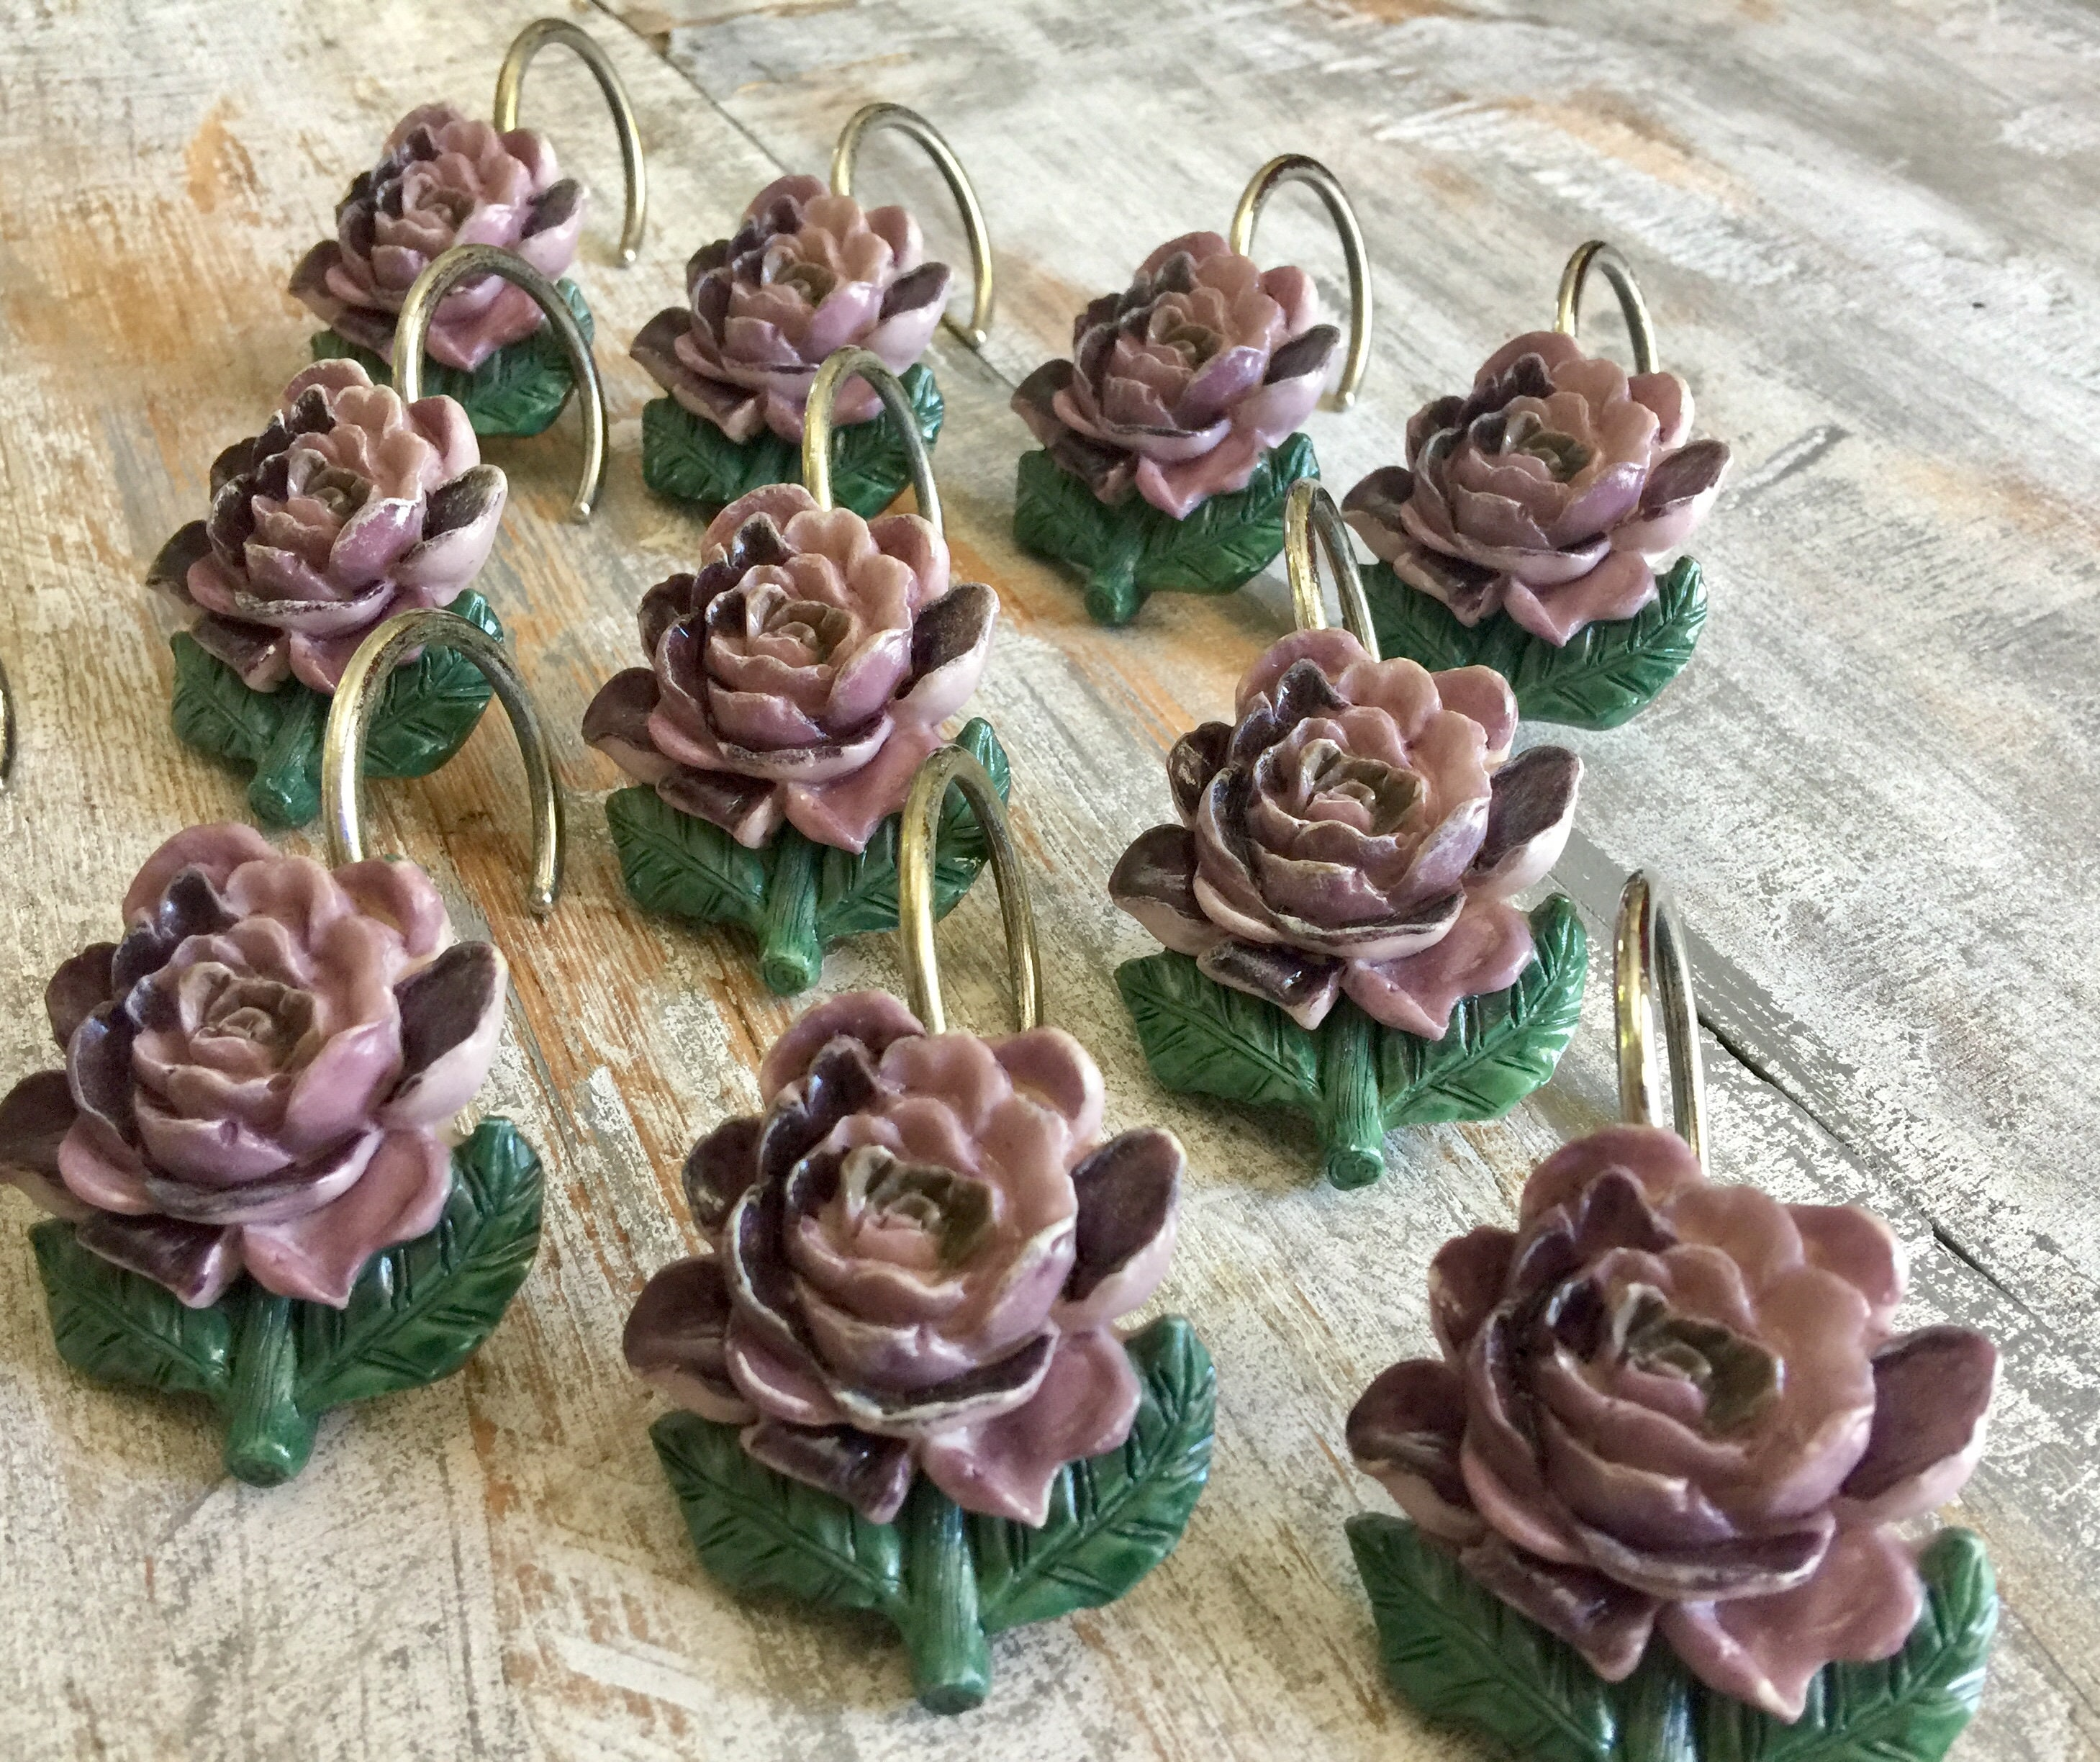 Set Of 11 Resin Shower Curtain Rings Hooks Vintage Purple Roses Green Leaves Shabby Chic Floral Decor Cottage Bathroom Bohemian Dorm Gift